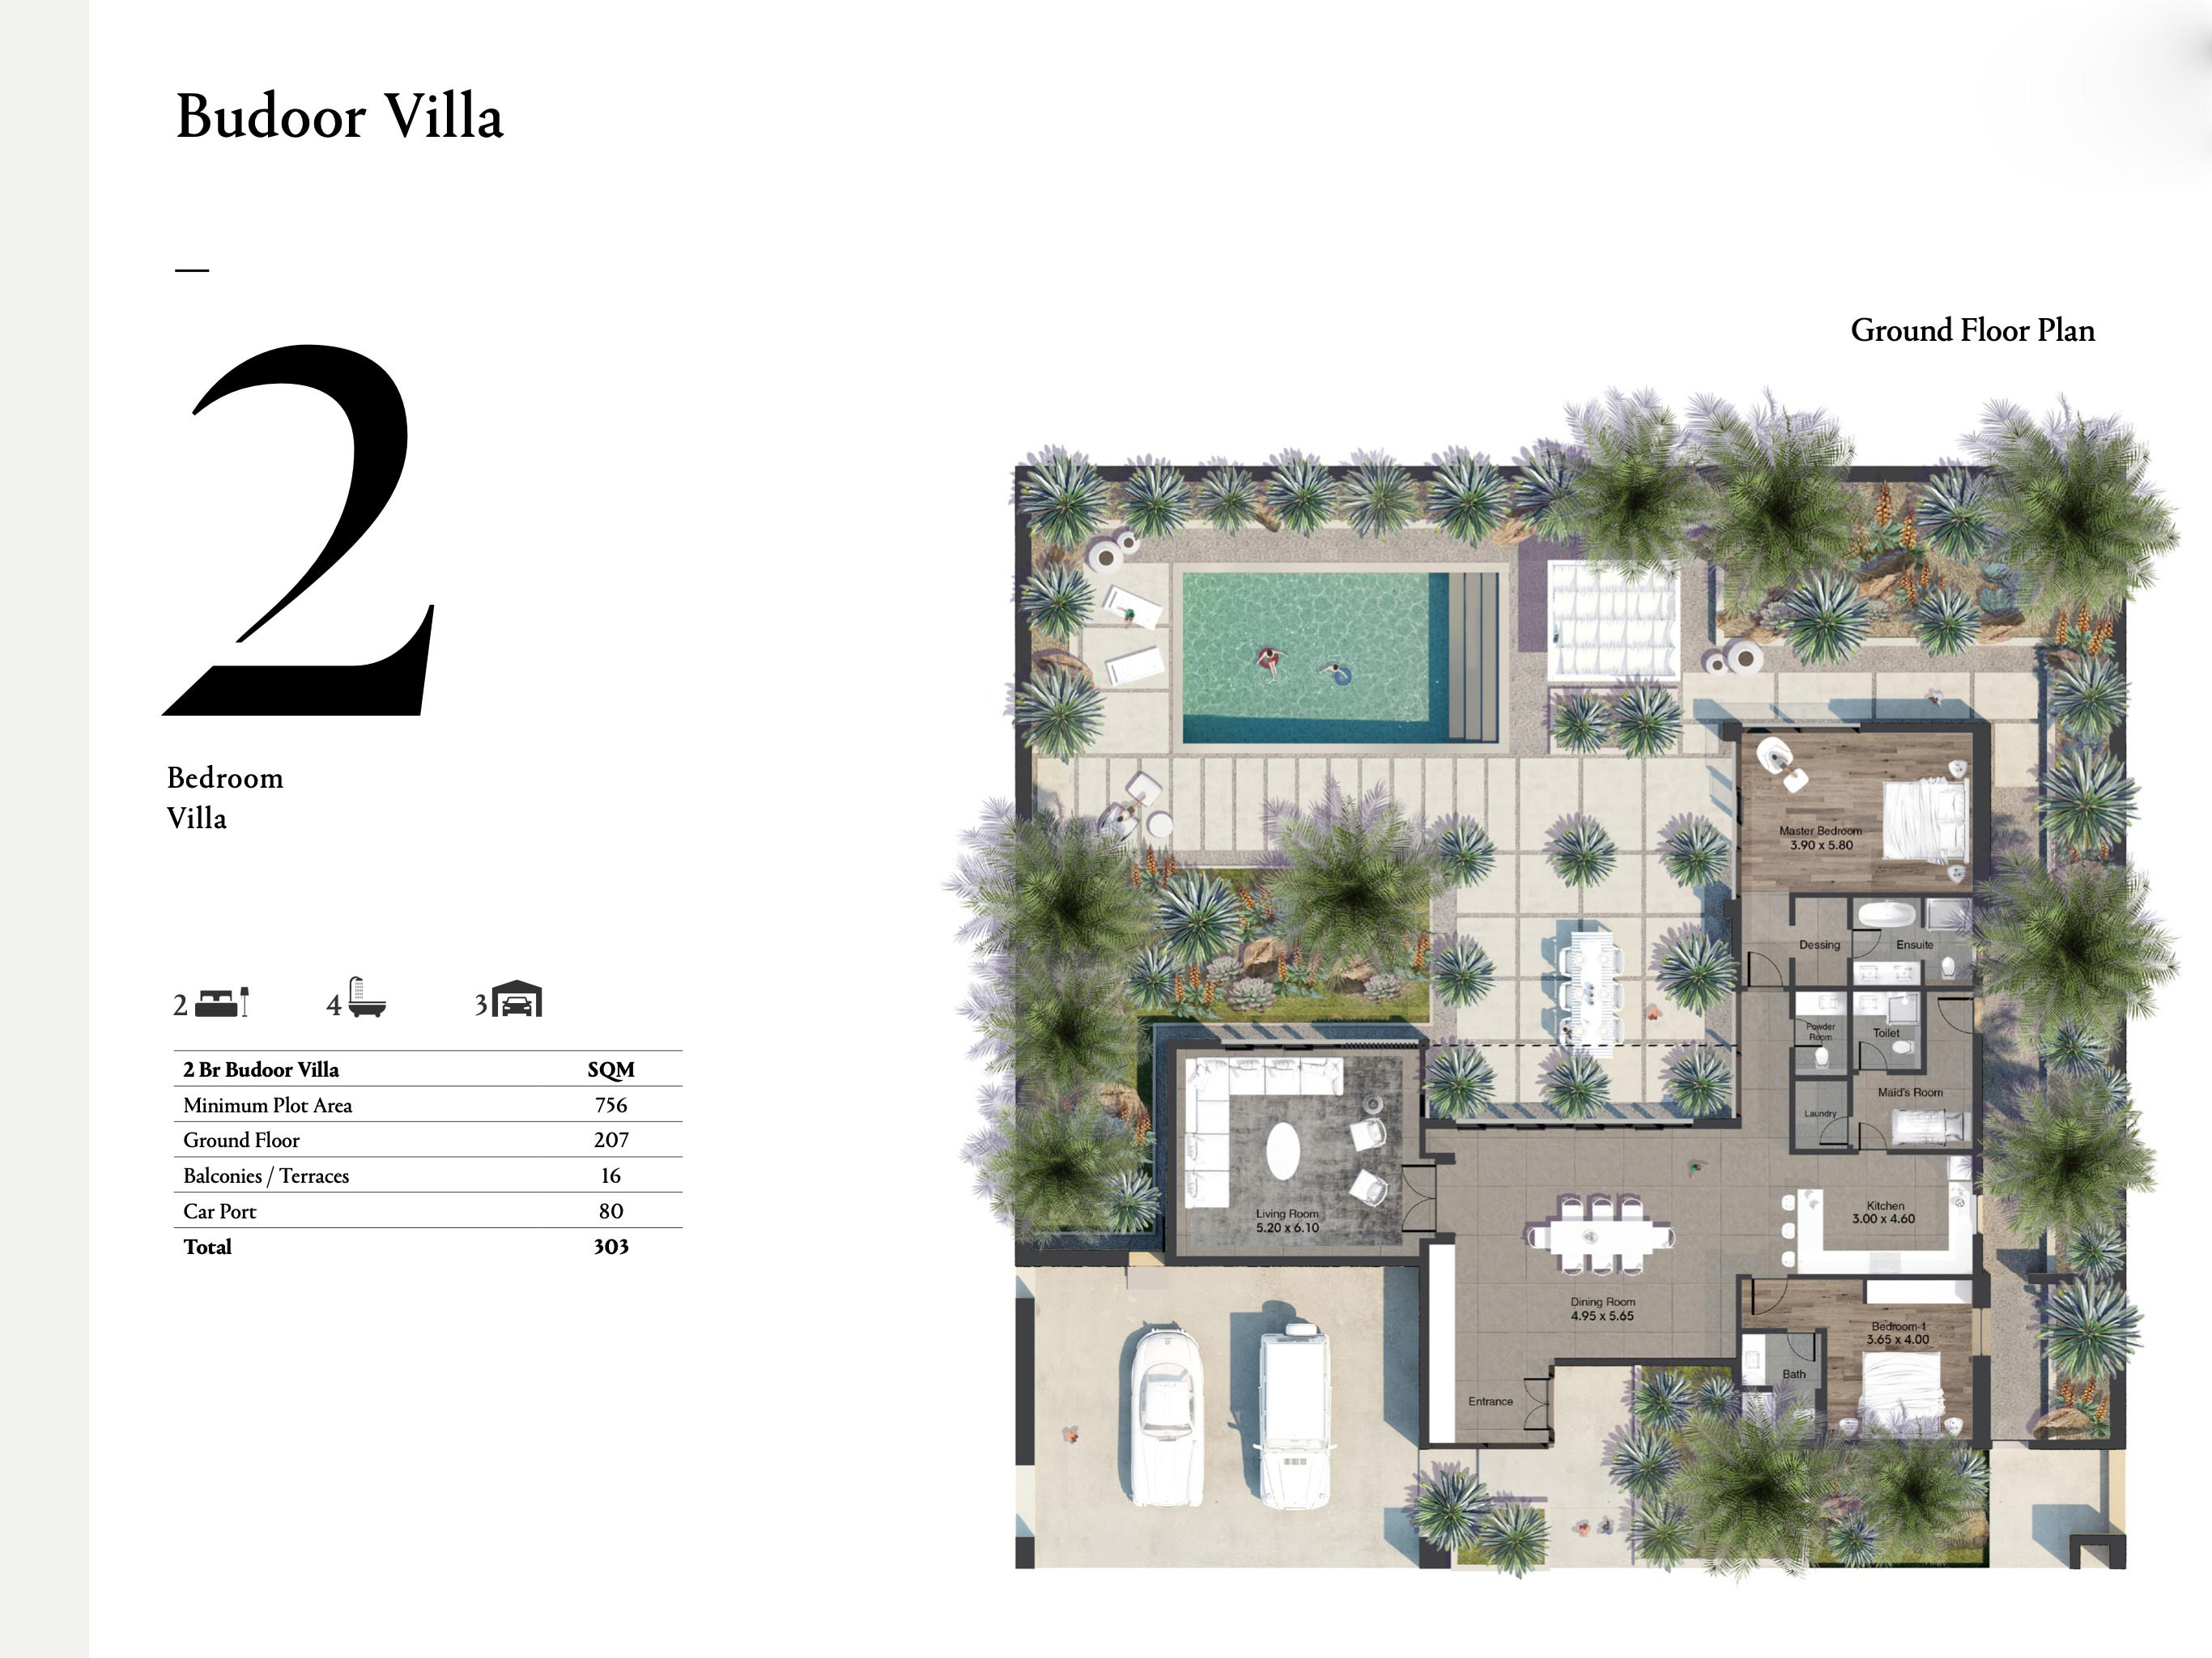 2 bedroom units with a size area of 303 sqm